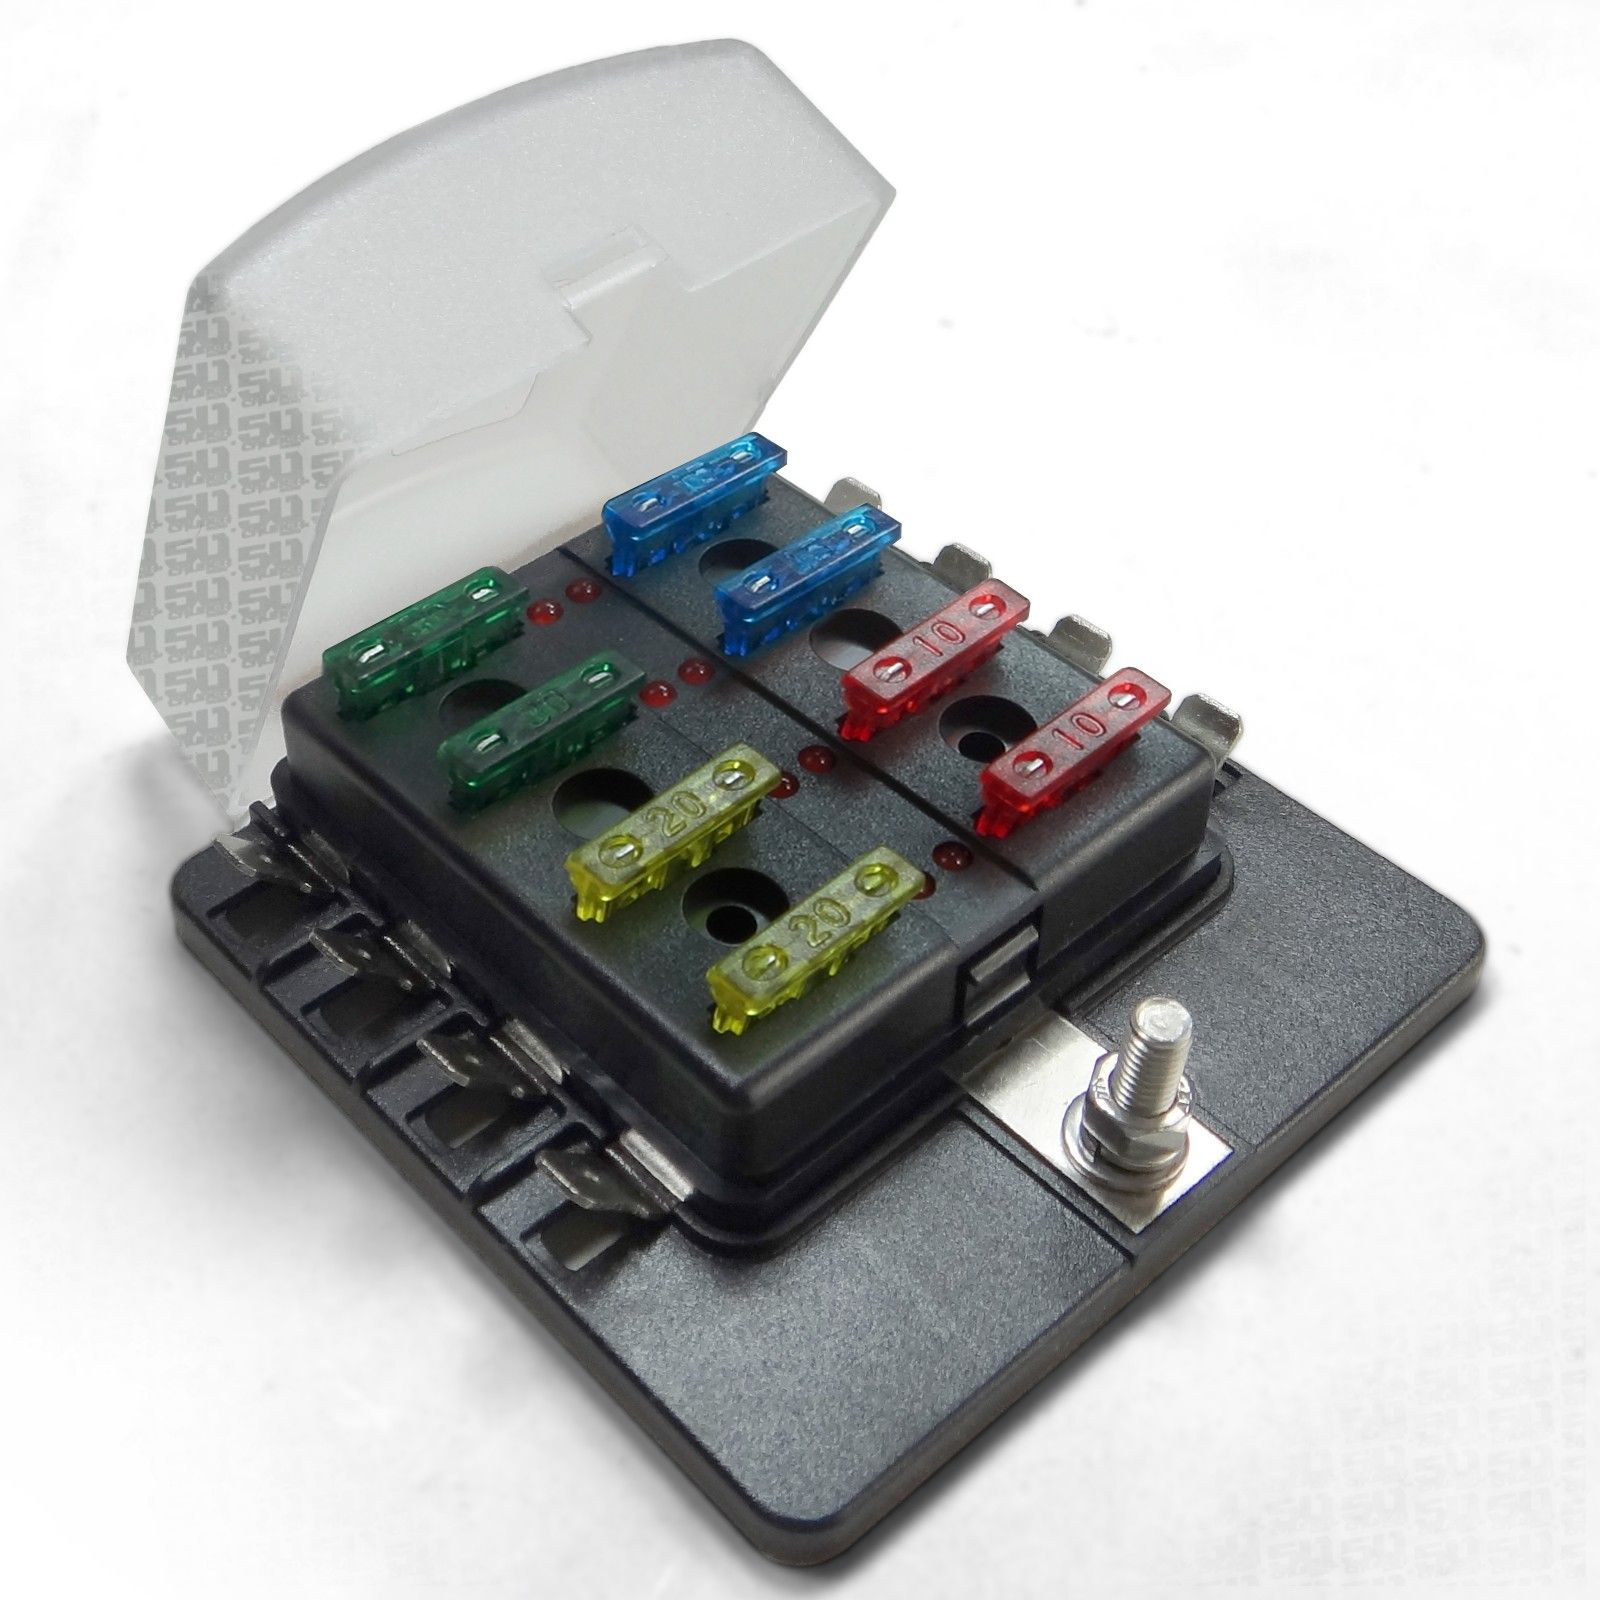 hight resolution of universal 8 way covered 12v circuit blade fuse box with led indicators and accessories